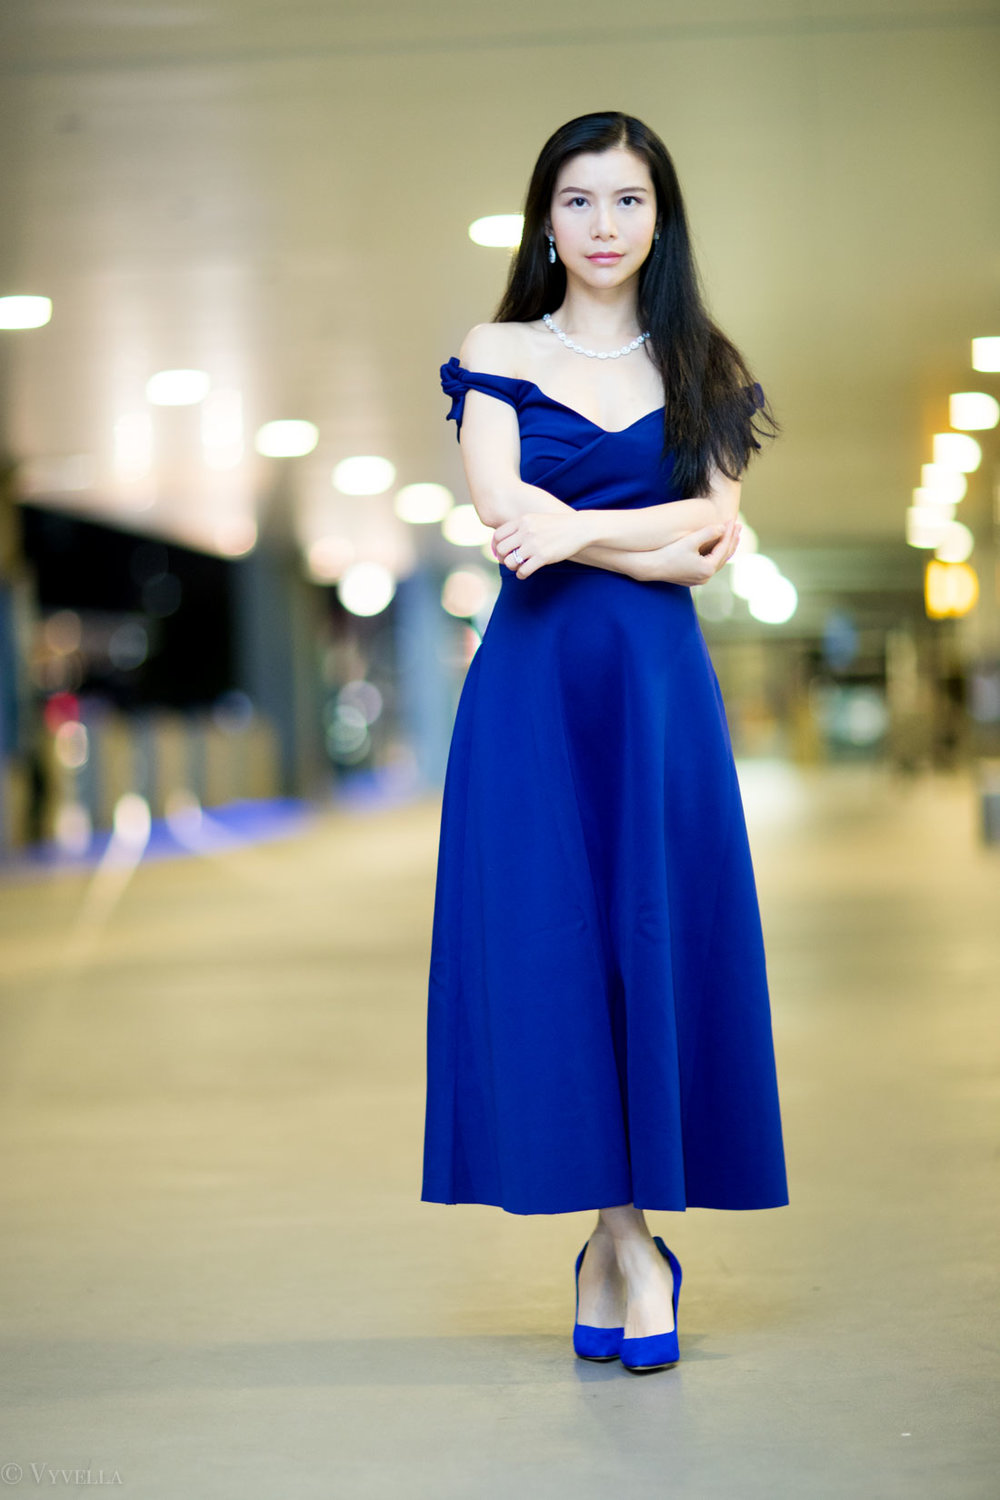 looks_royal-blue-off-the-shoulder-dress_02.jpg